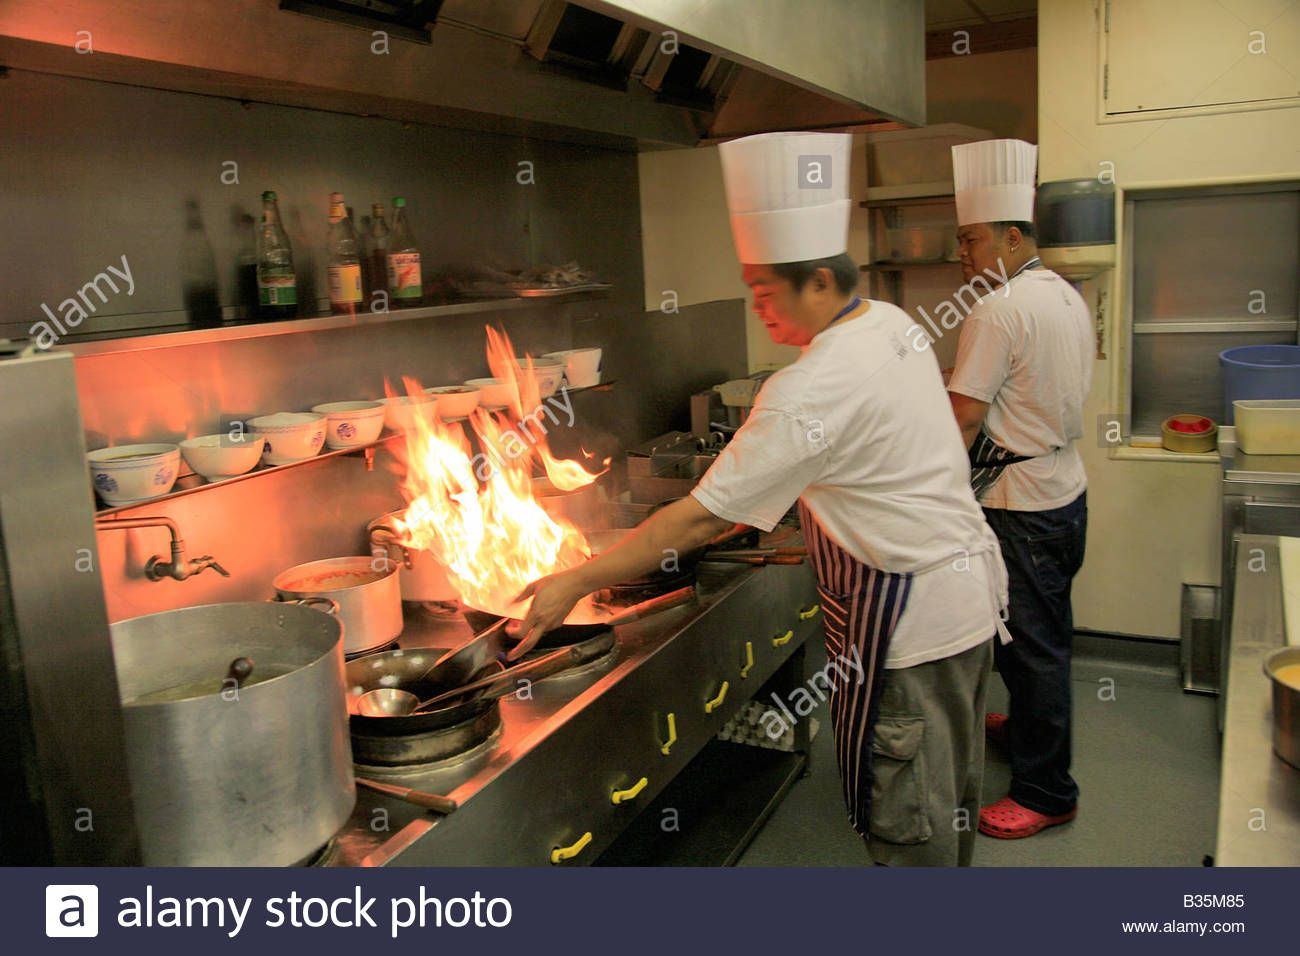 Pin On Wok The Line